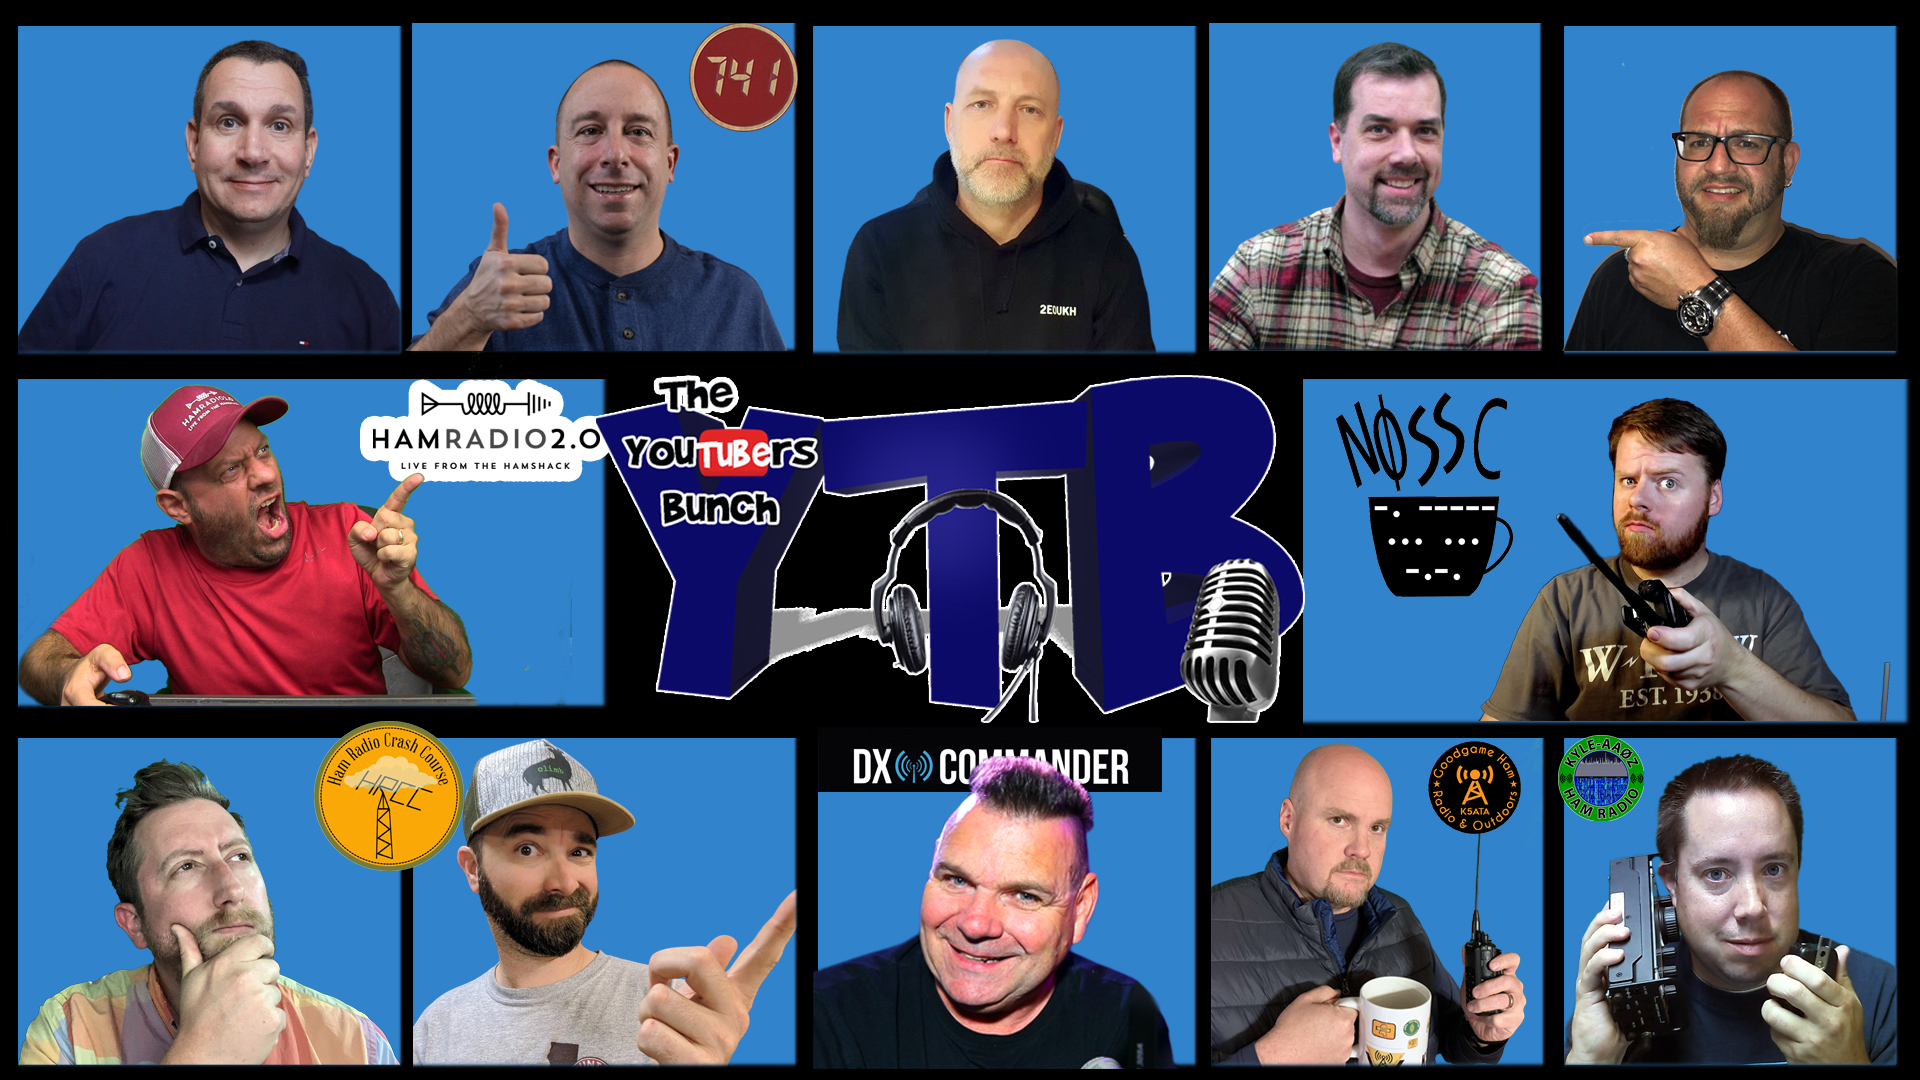 Episode 428: YouTubers Bunch – A Show About Nothing! – Welcome K6ARK! YTB #18